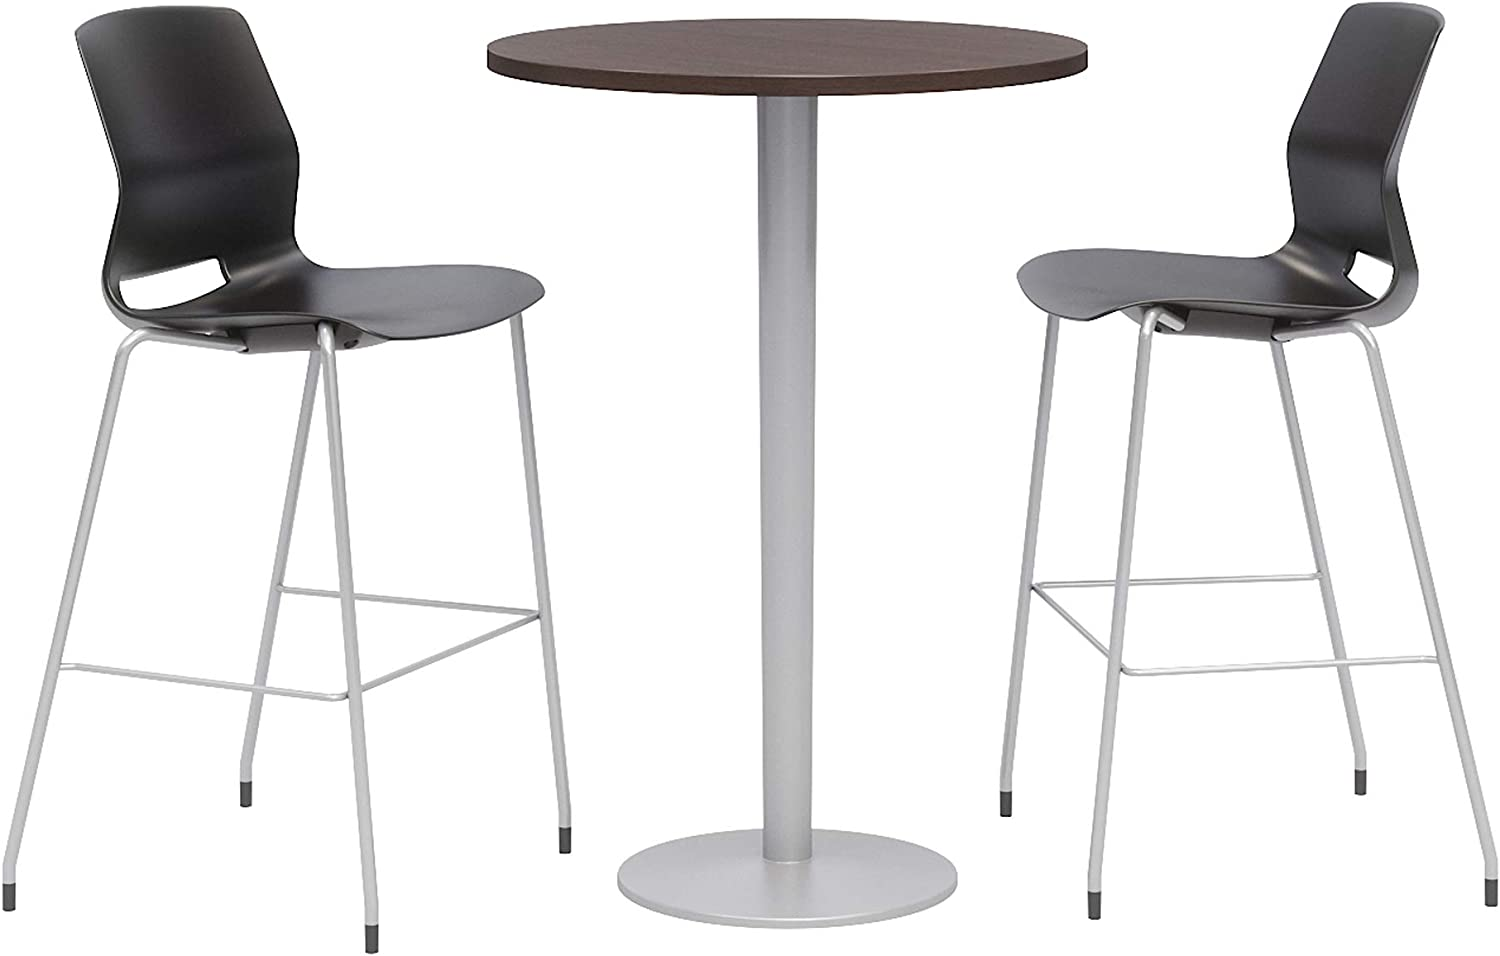 Olio Designs Dining Room Furniture, Espresso Table, Black Stools